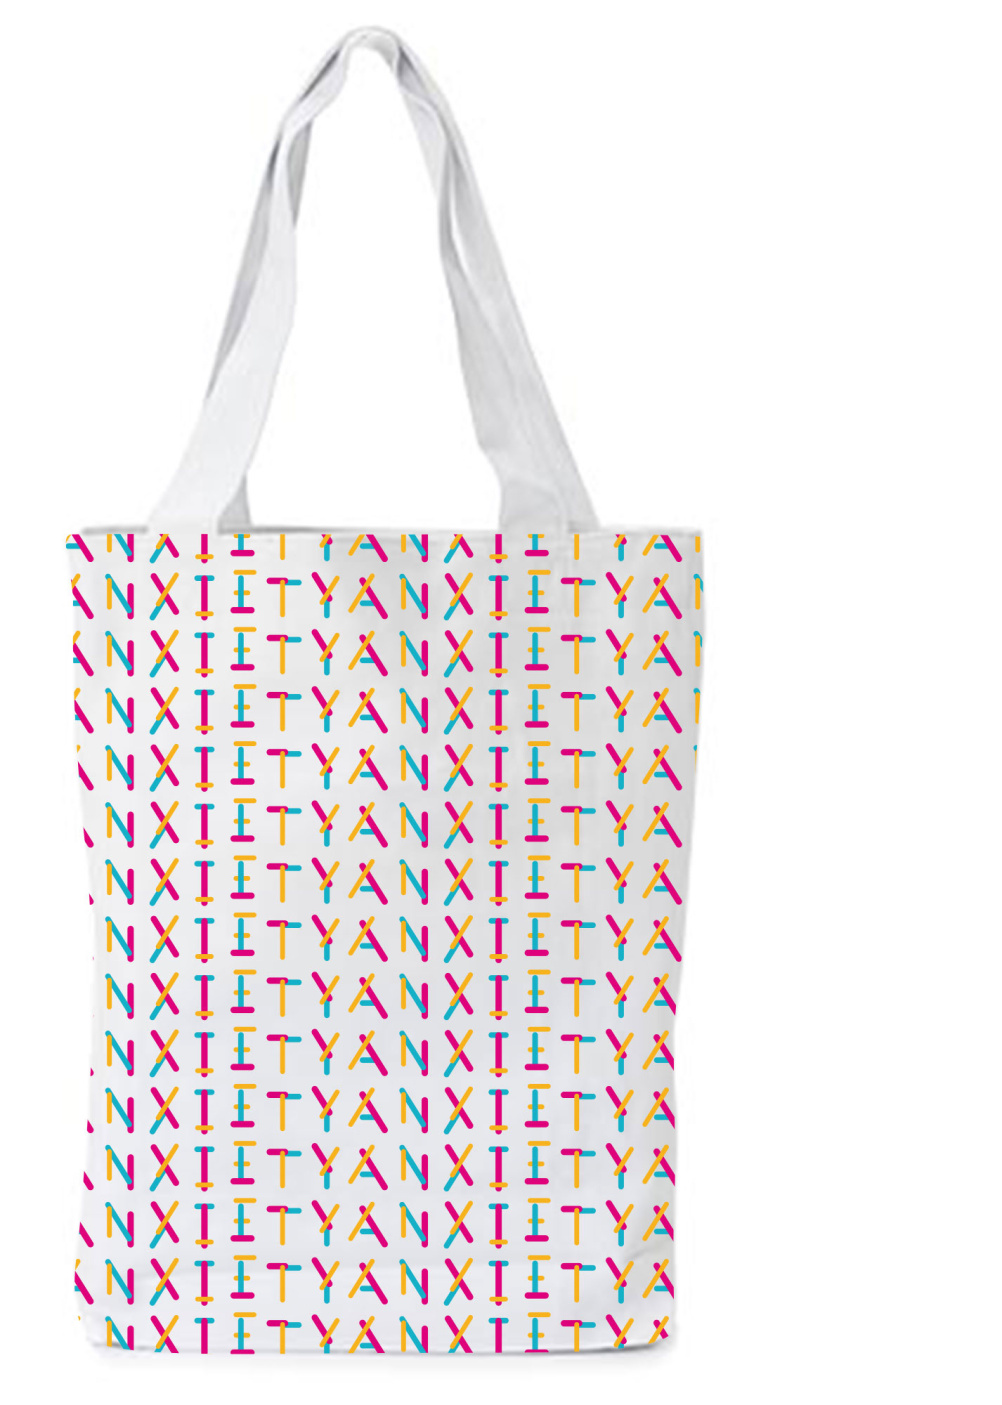 Anxiety Festival tote bag